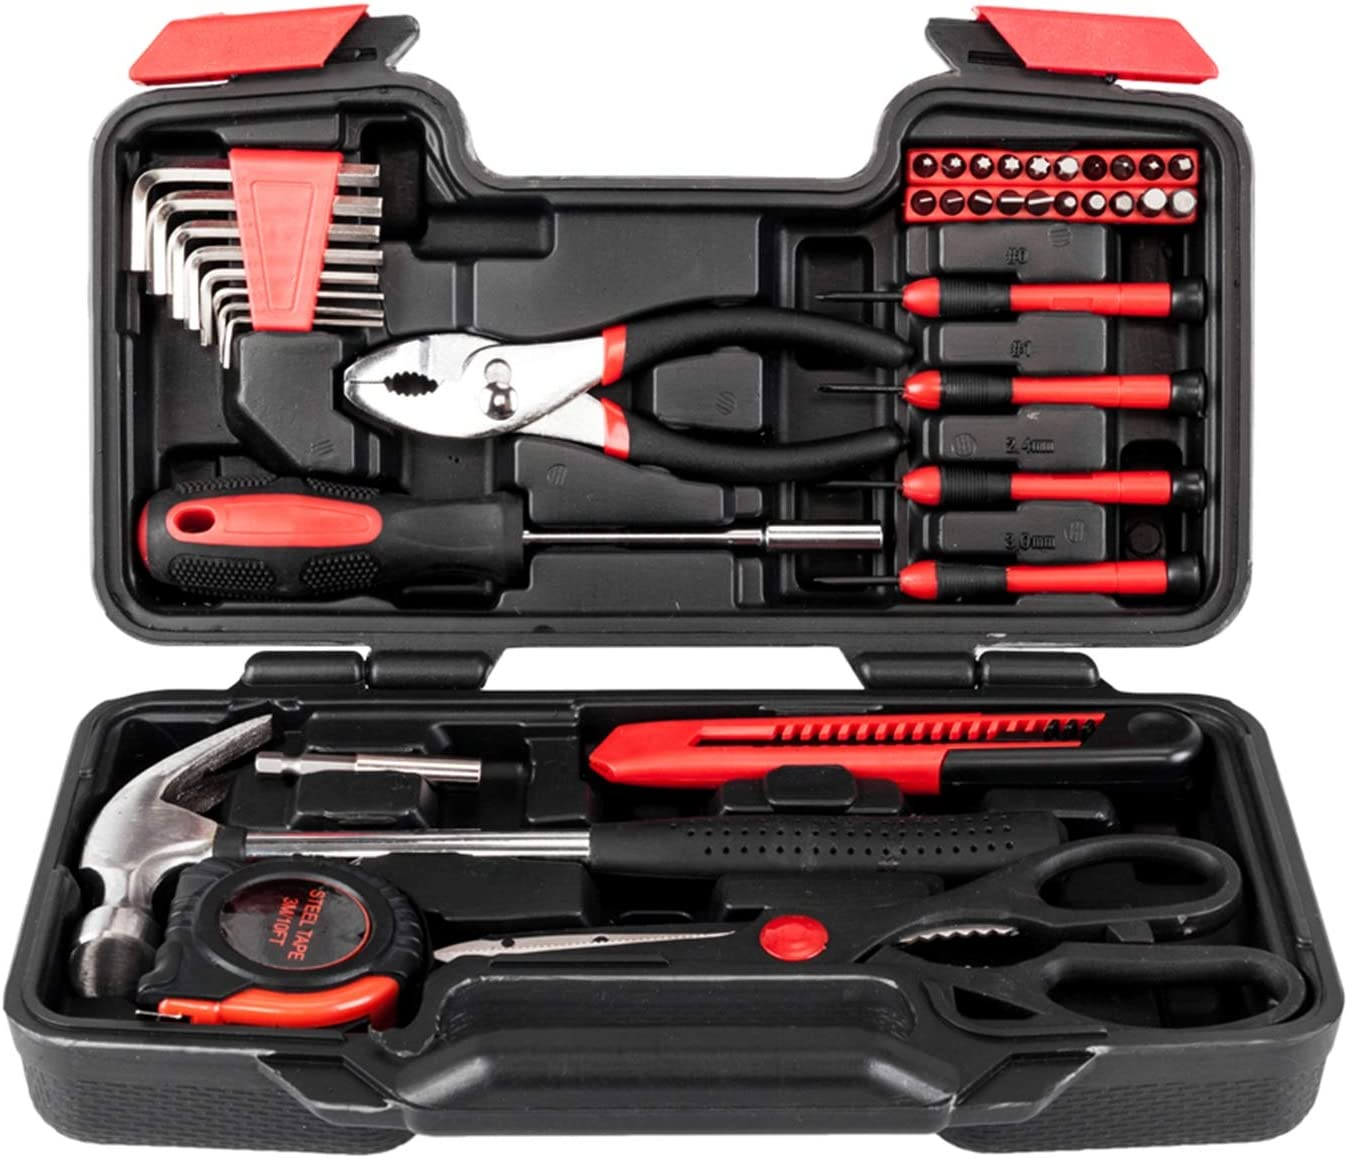 39 Piece Tool Set General Household R Plastic Box Our shop most popular Finally resale start Hand Kit